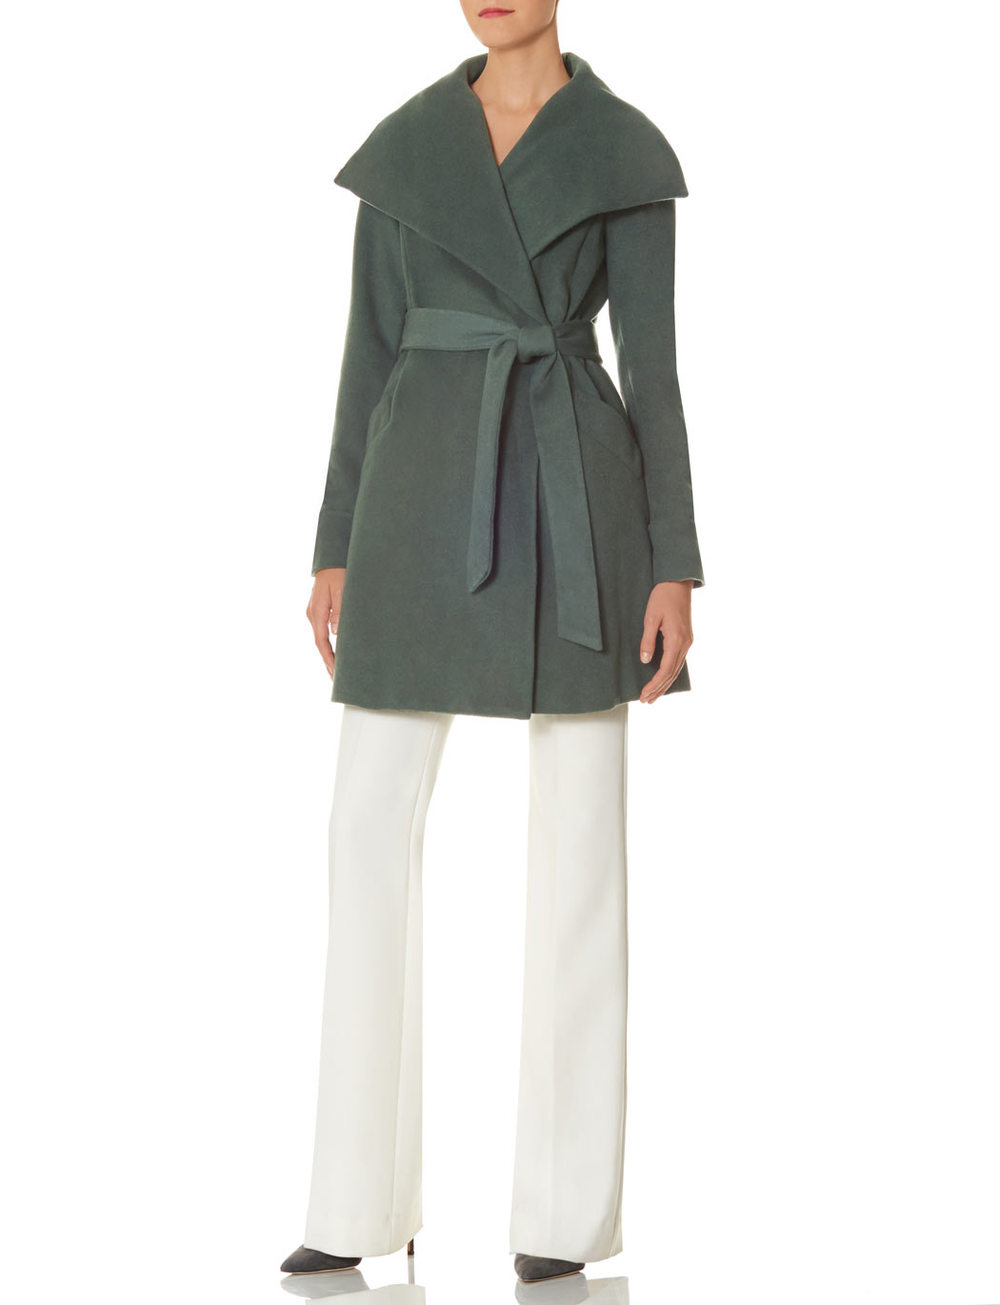 Scandal isn't as good as it used to be, but the clothes in the Scandal Collection for the Limited are glorious and sophisticated. Drape Collar Wrap Coat. Available in pink, sage green. The Limited. $248.